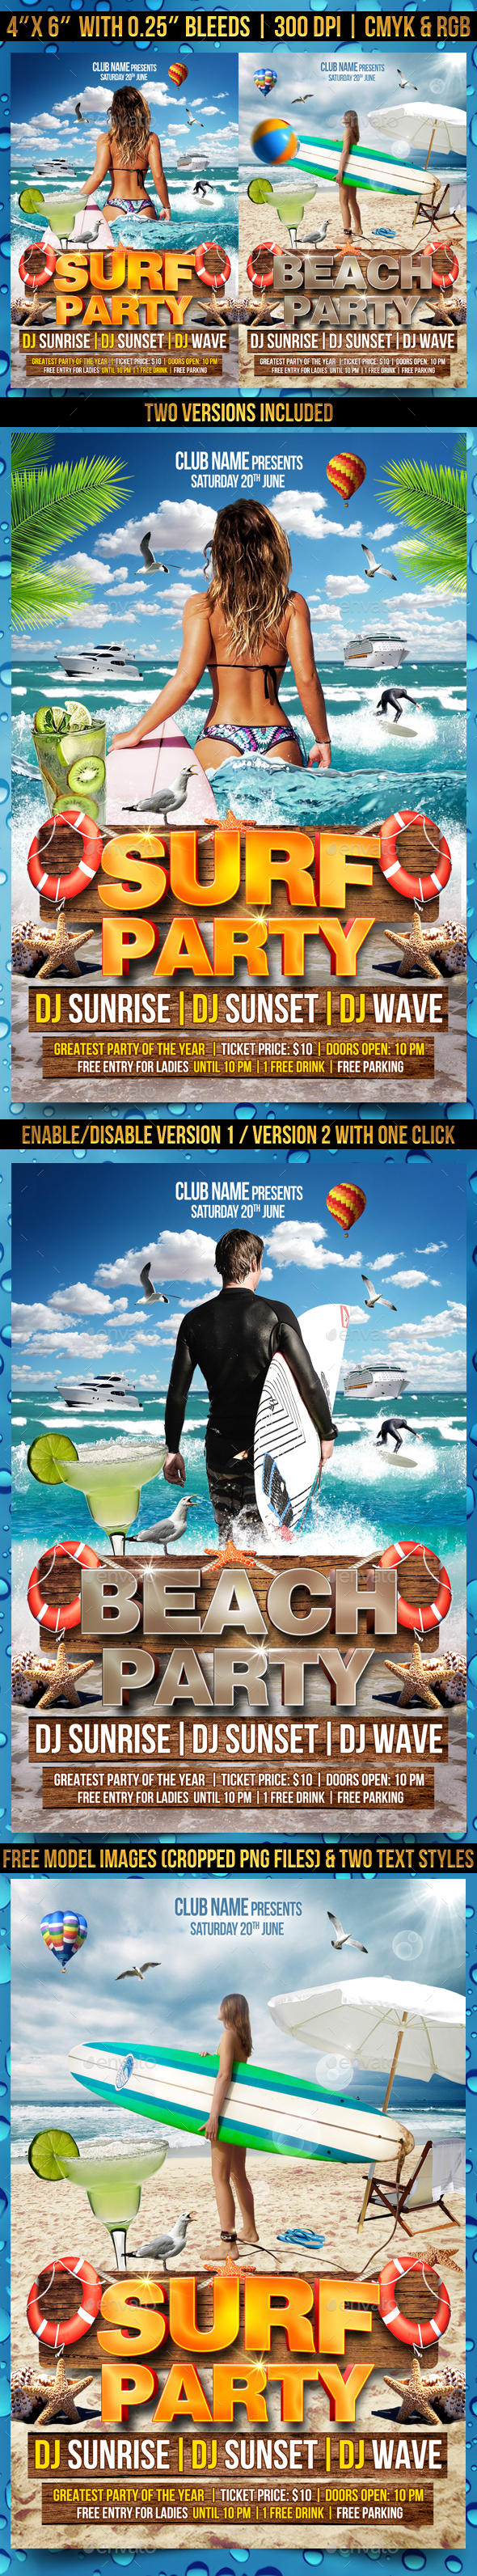 Surf Party Flyer Template - Clubs & Parties Events